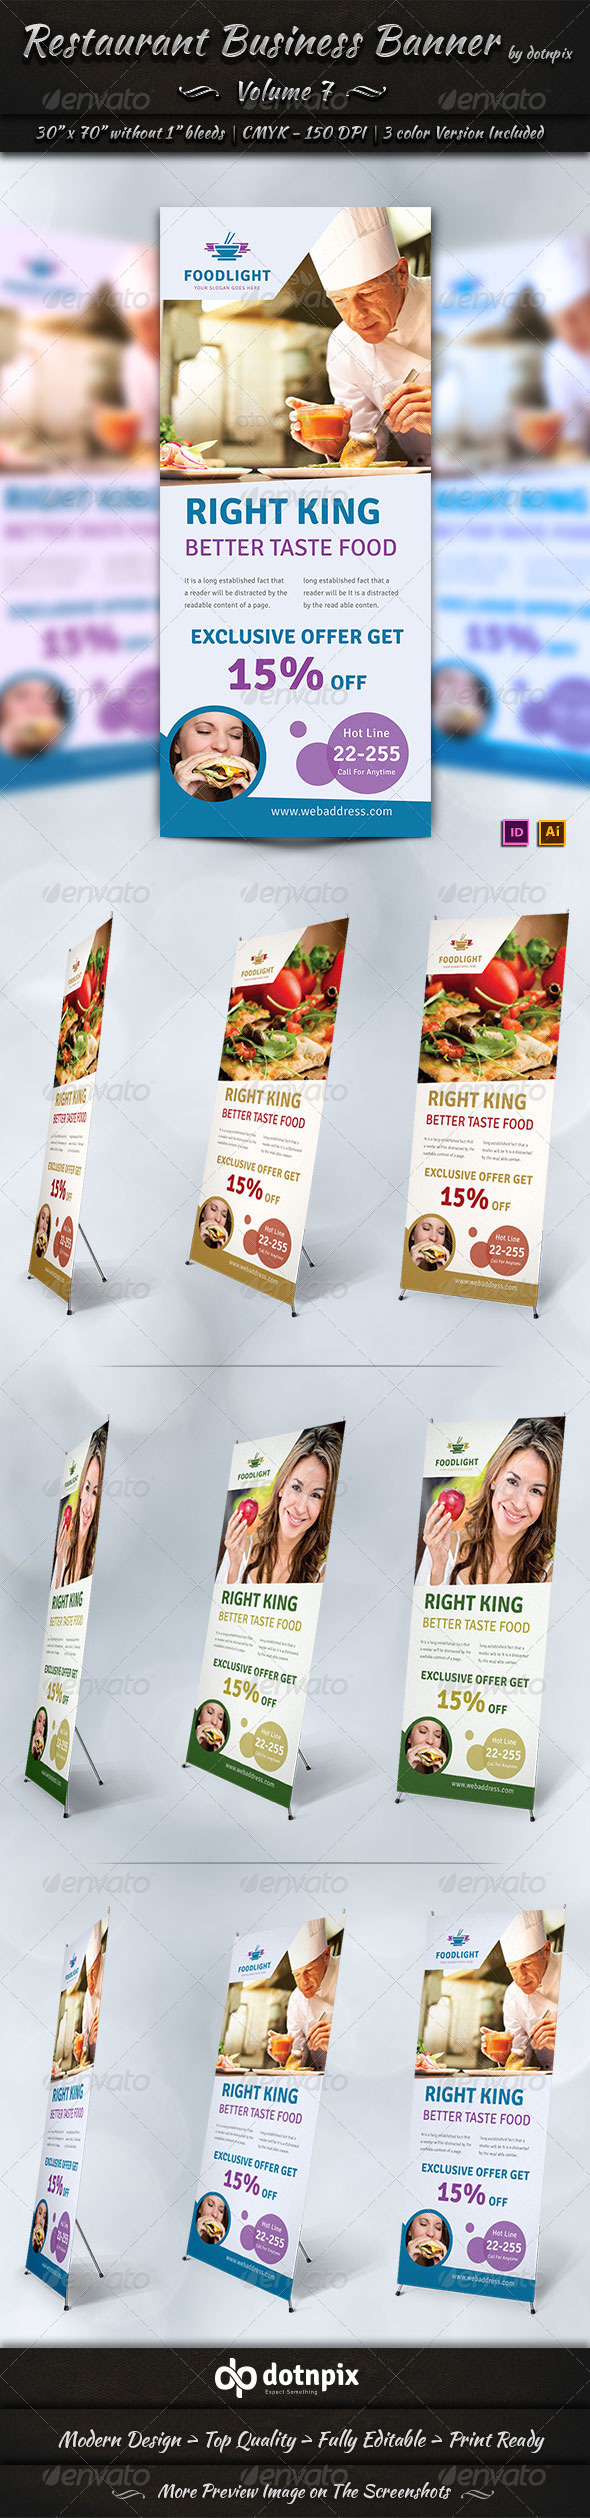 GraphicRiver Restaurant Business Banner Volume 7 7770398